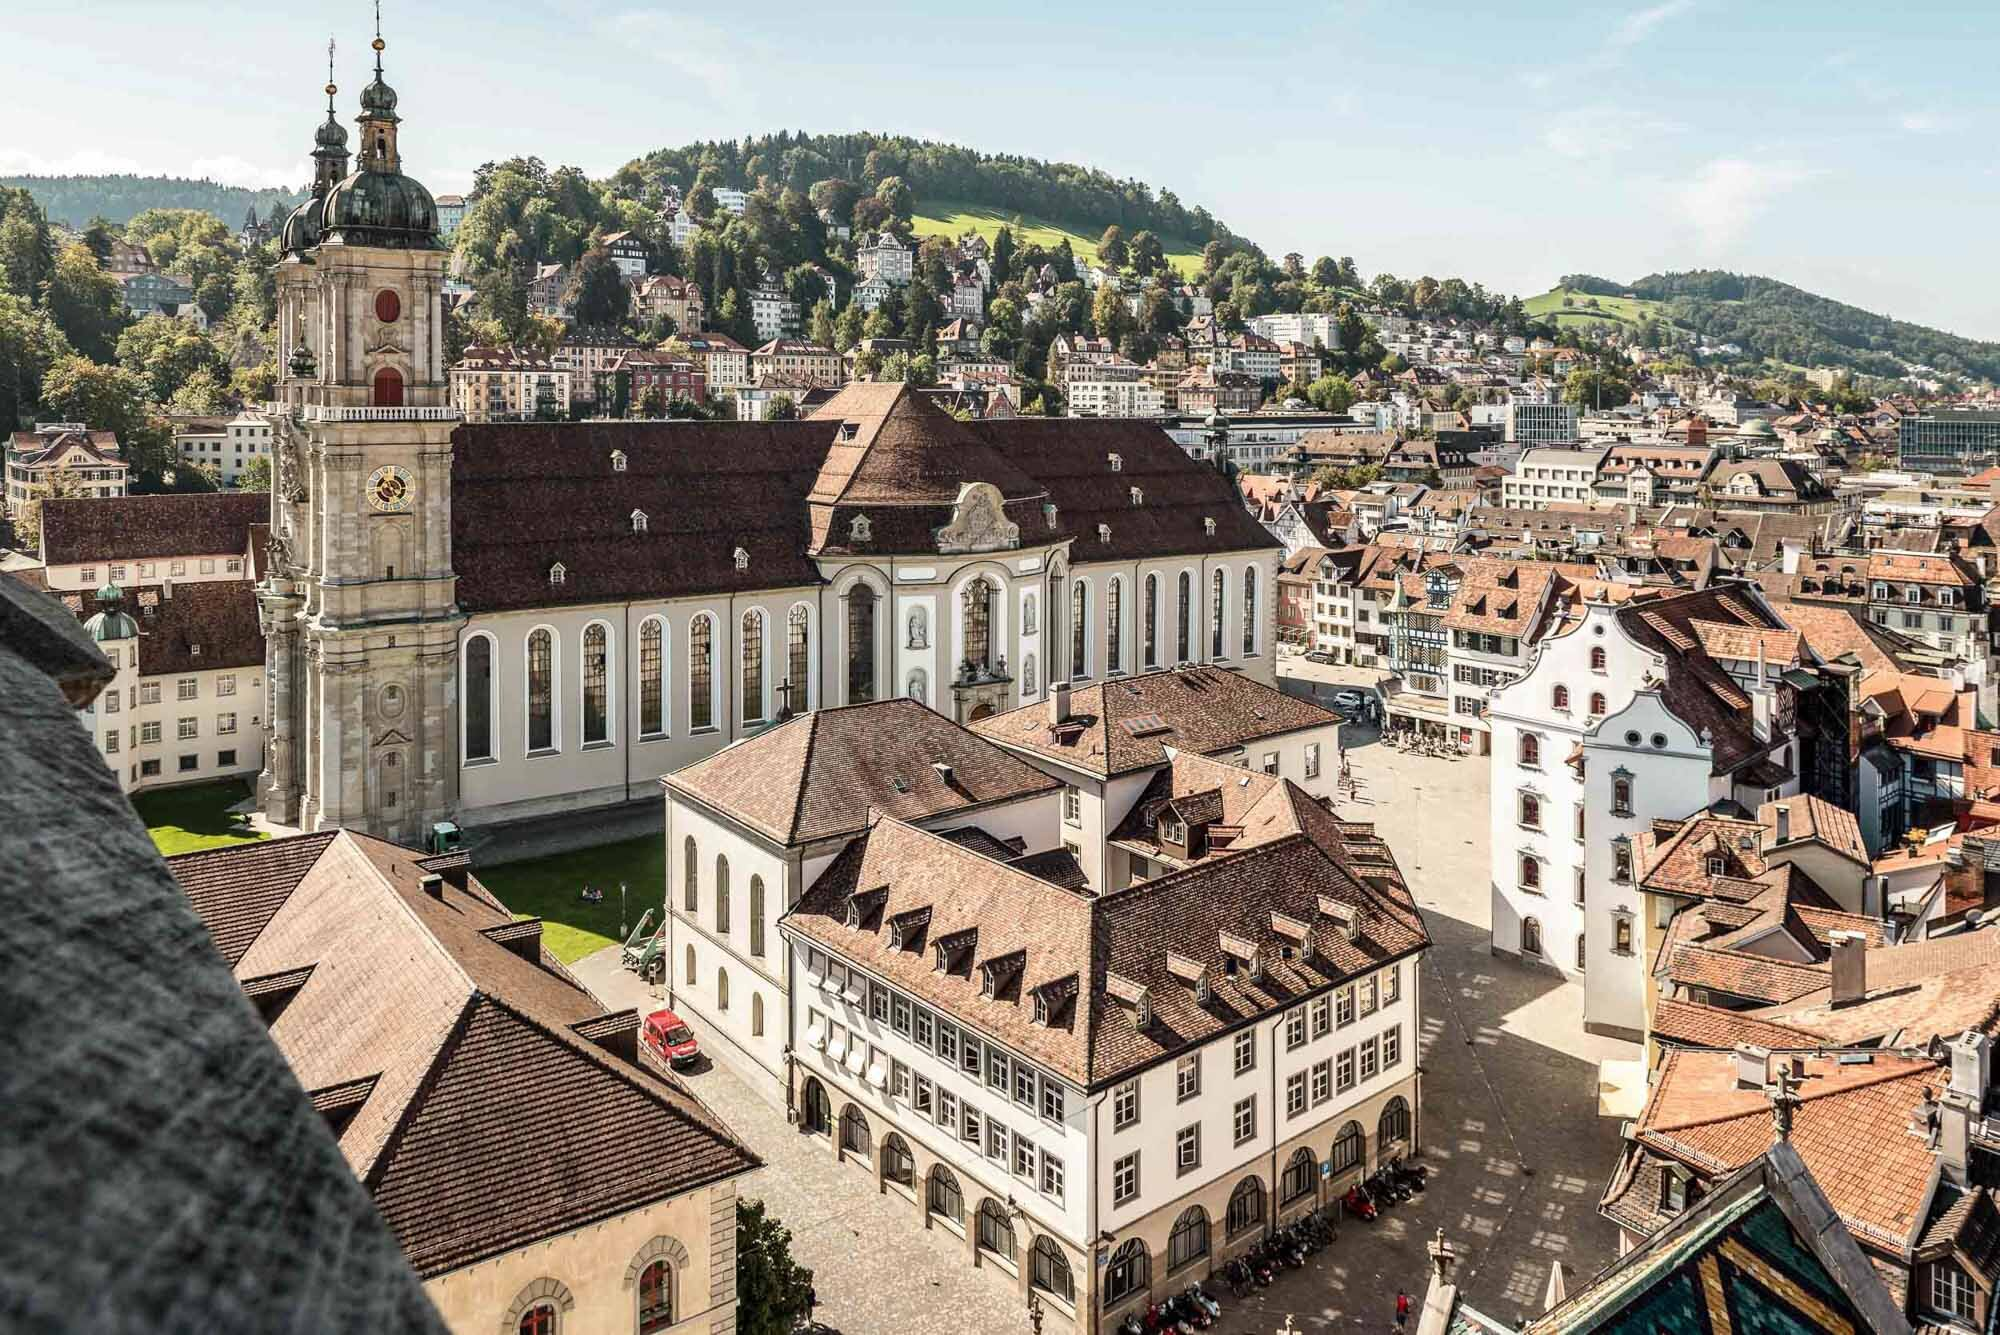 St. Gallen, football town with tradition: View from the Catholic church tower to the abbey district. Copyright by: Switzerland Tourism